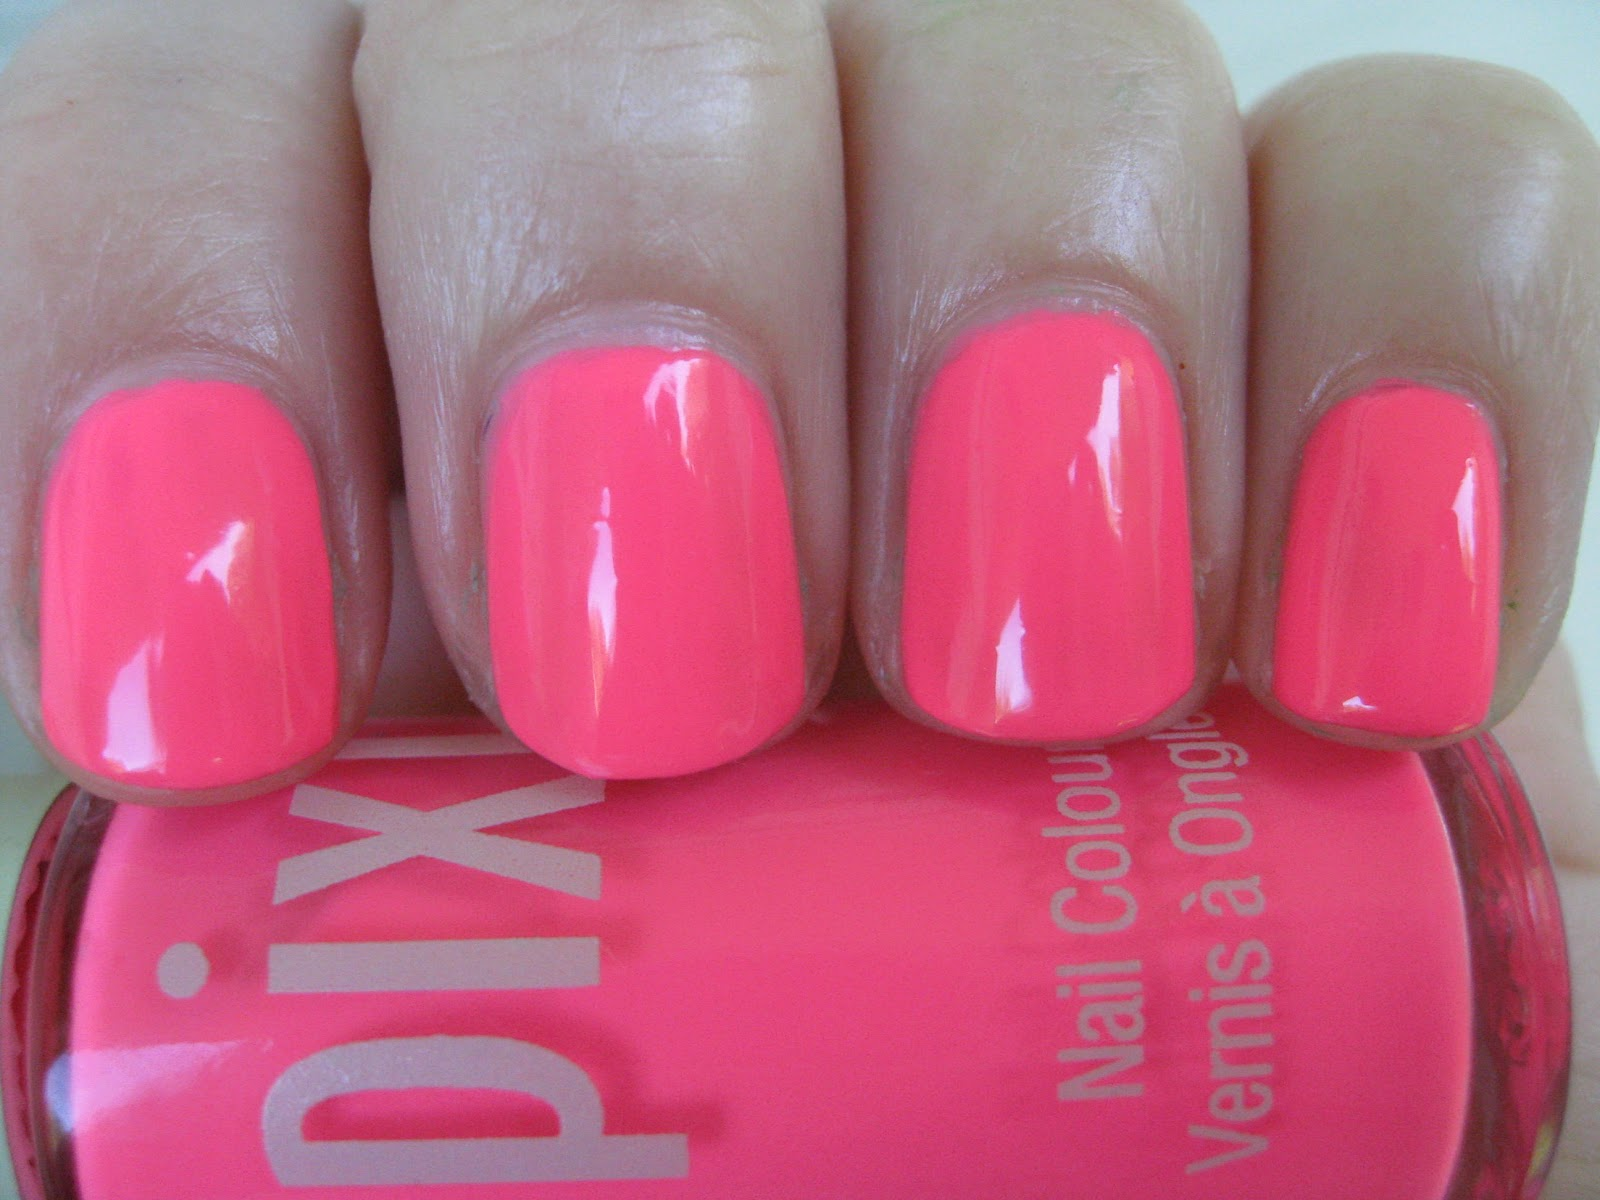 Neons Are A Huge Nail Trend This Season As I M Sure You Ve Noticed Neon Means Business It Is Bright Even More So